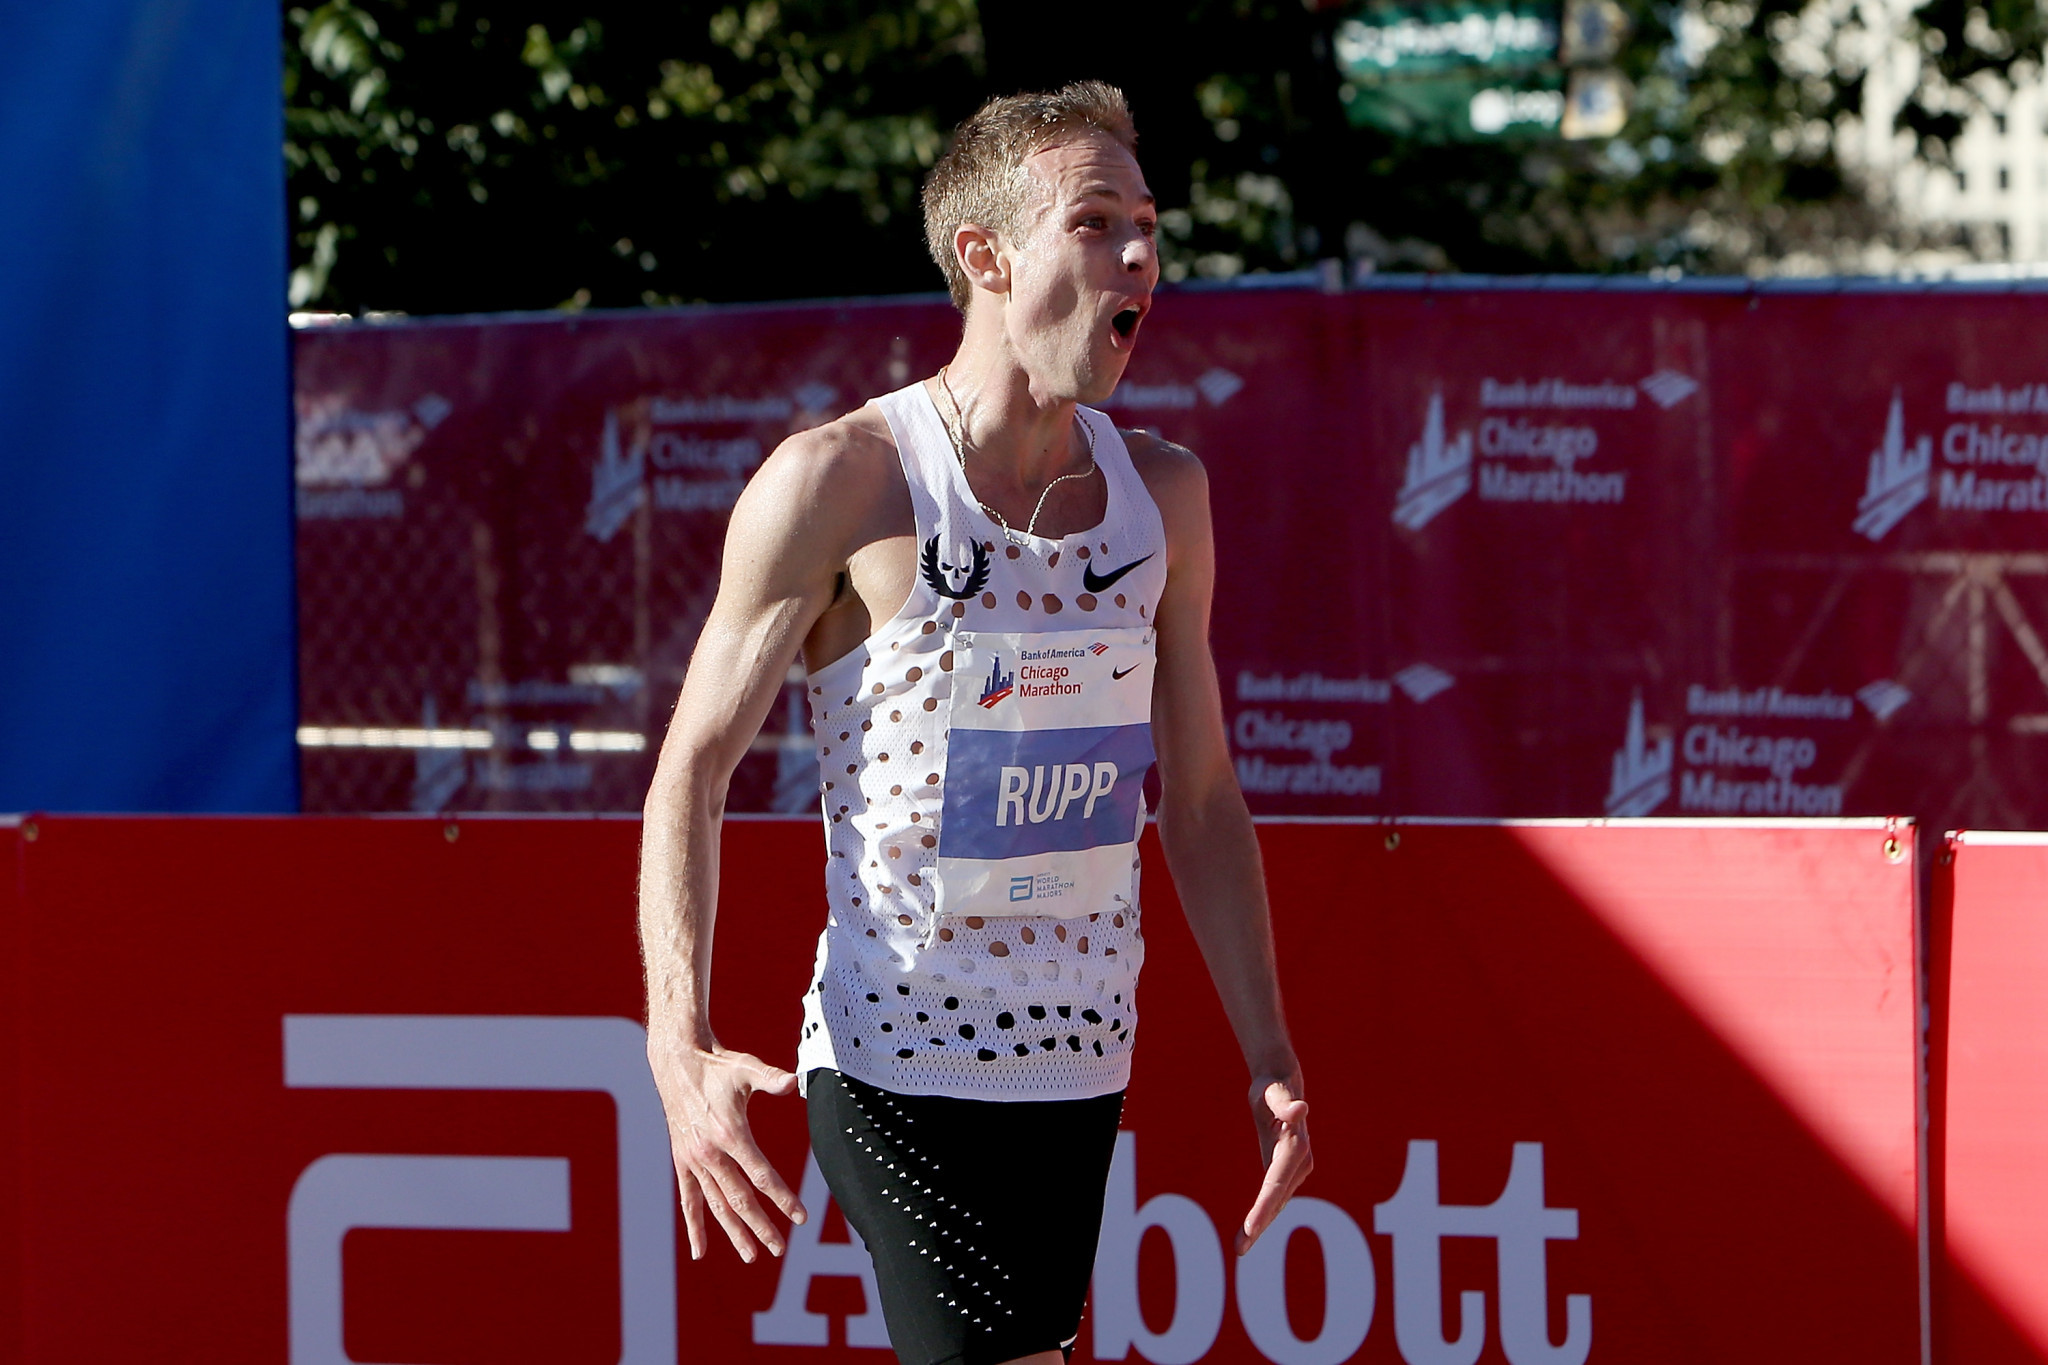 Galen Rupp enjoyed a superb victory at the Chicago Marathon ©Getty Images